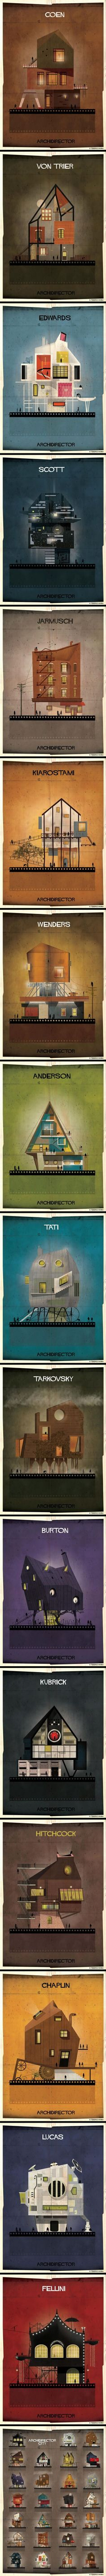 This Artist Imagines Architecture in the Film Style of Famous Directors